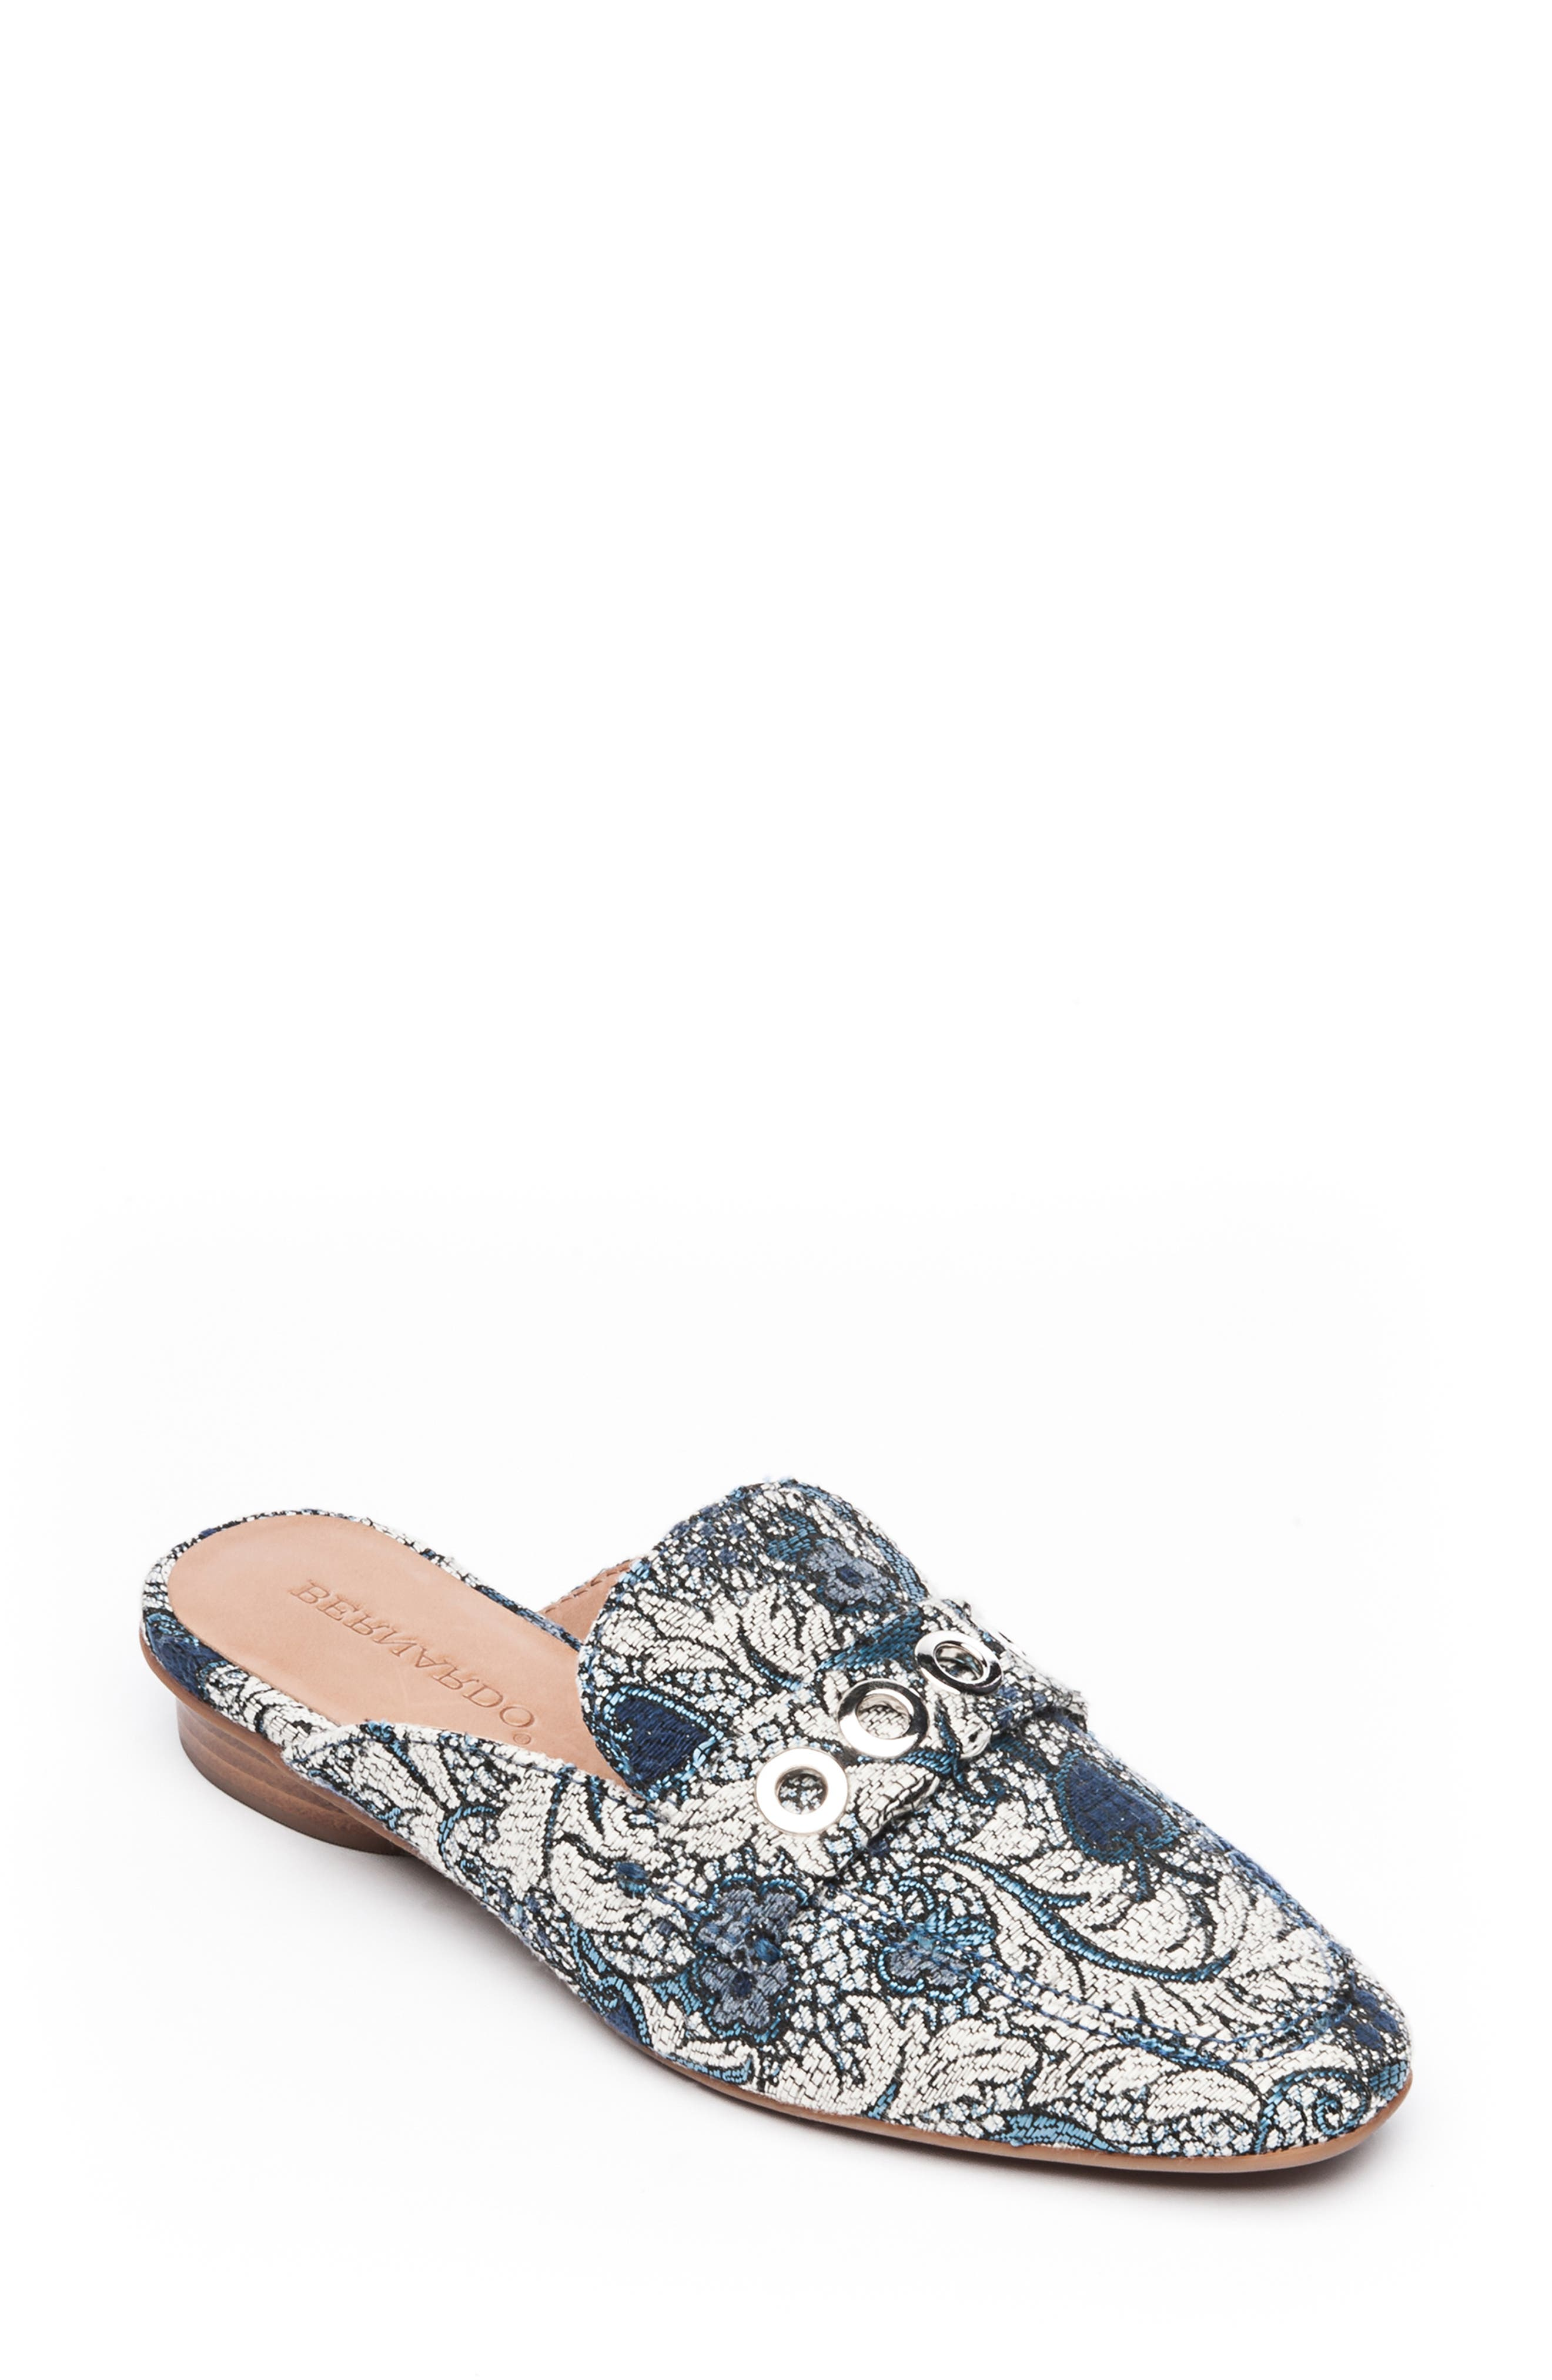 Bernardo Jen Mule,                         Main,                         color, BLUE JACQUARD LEATHER